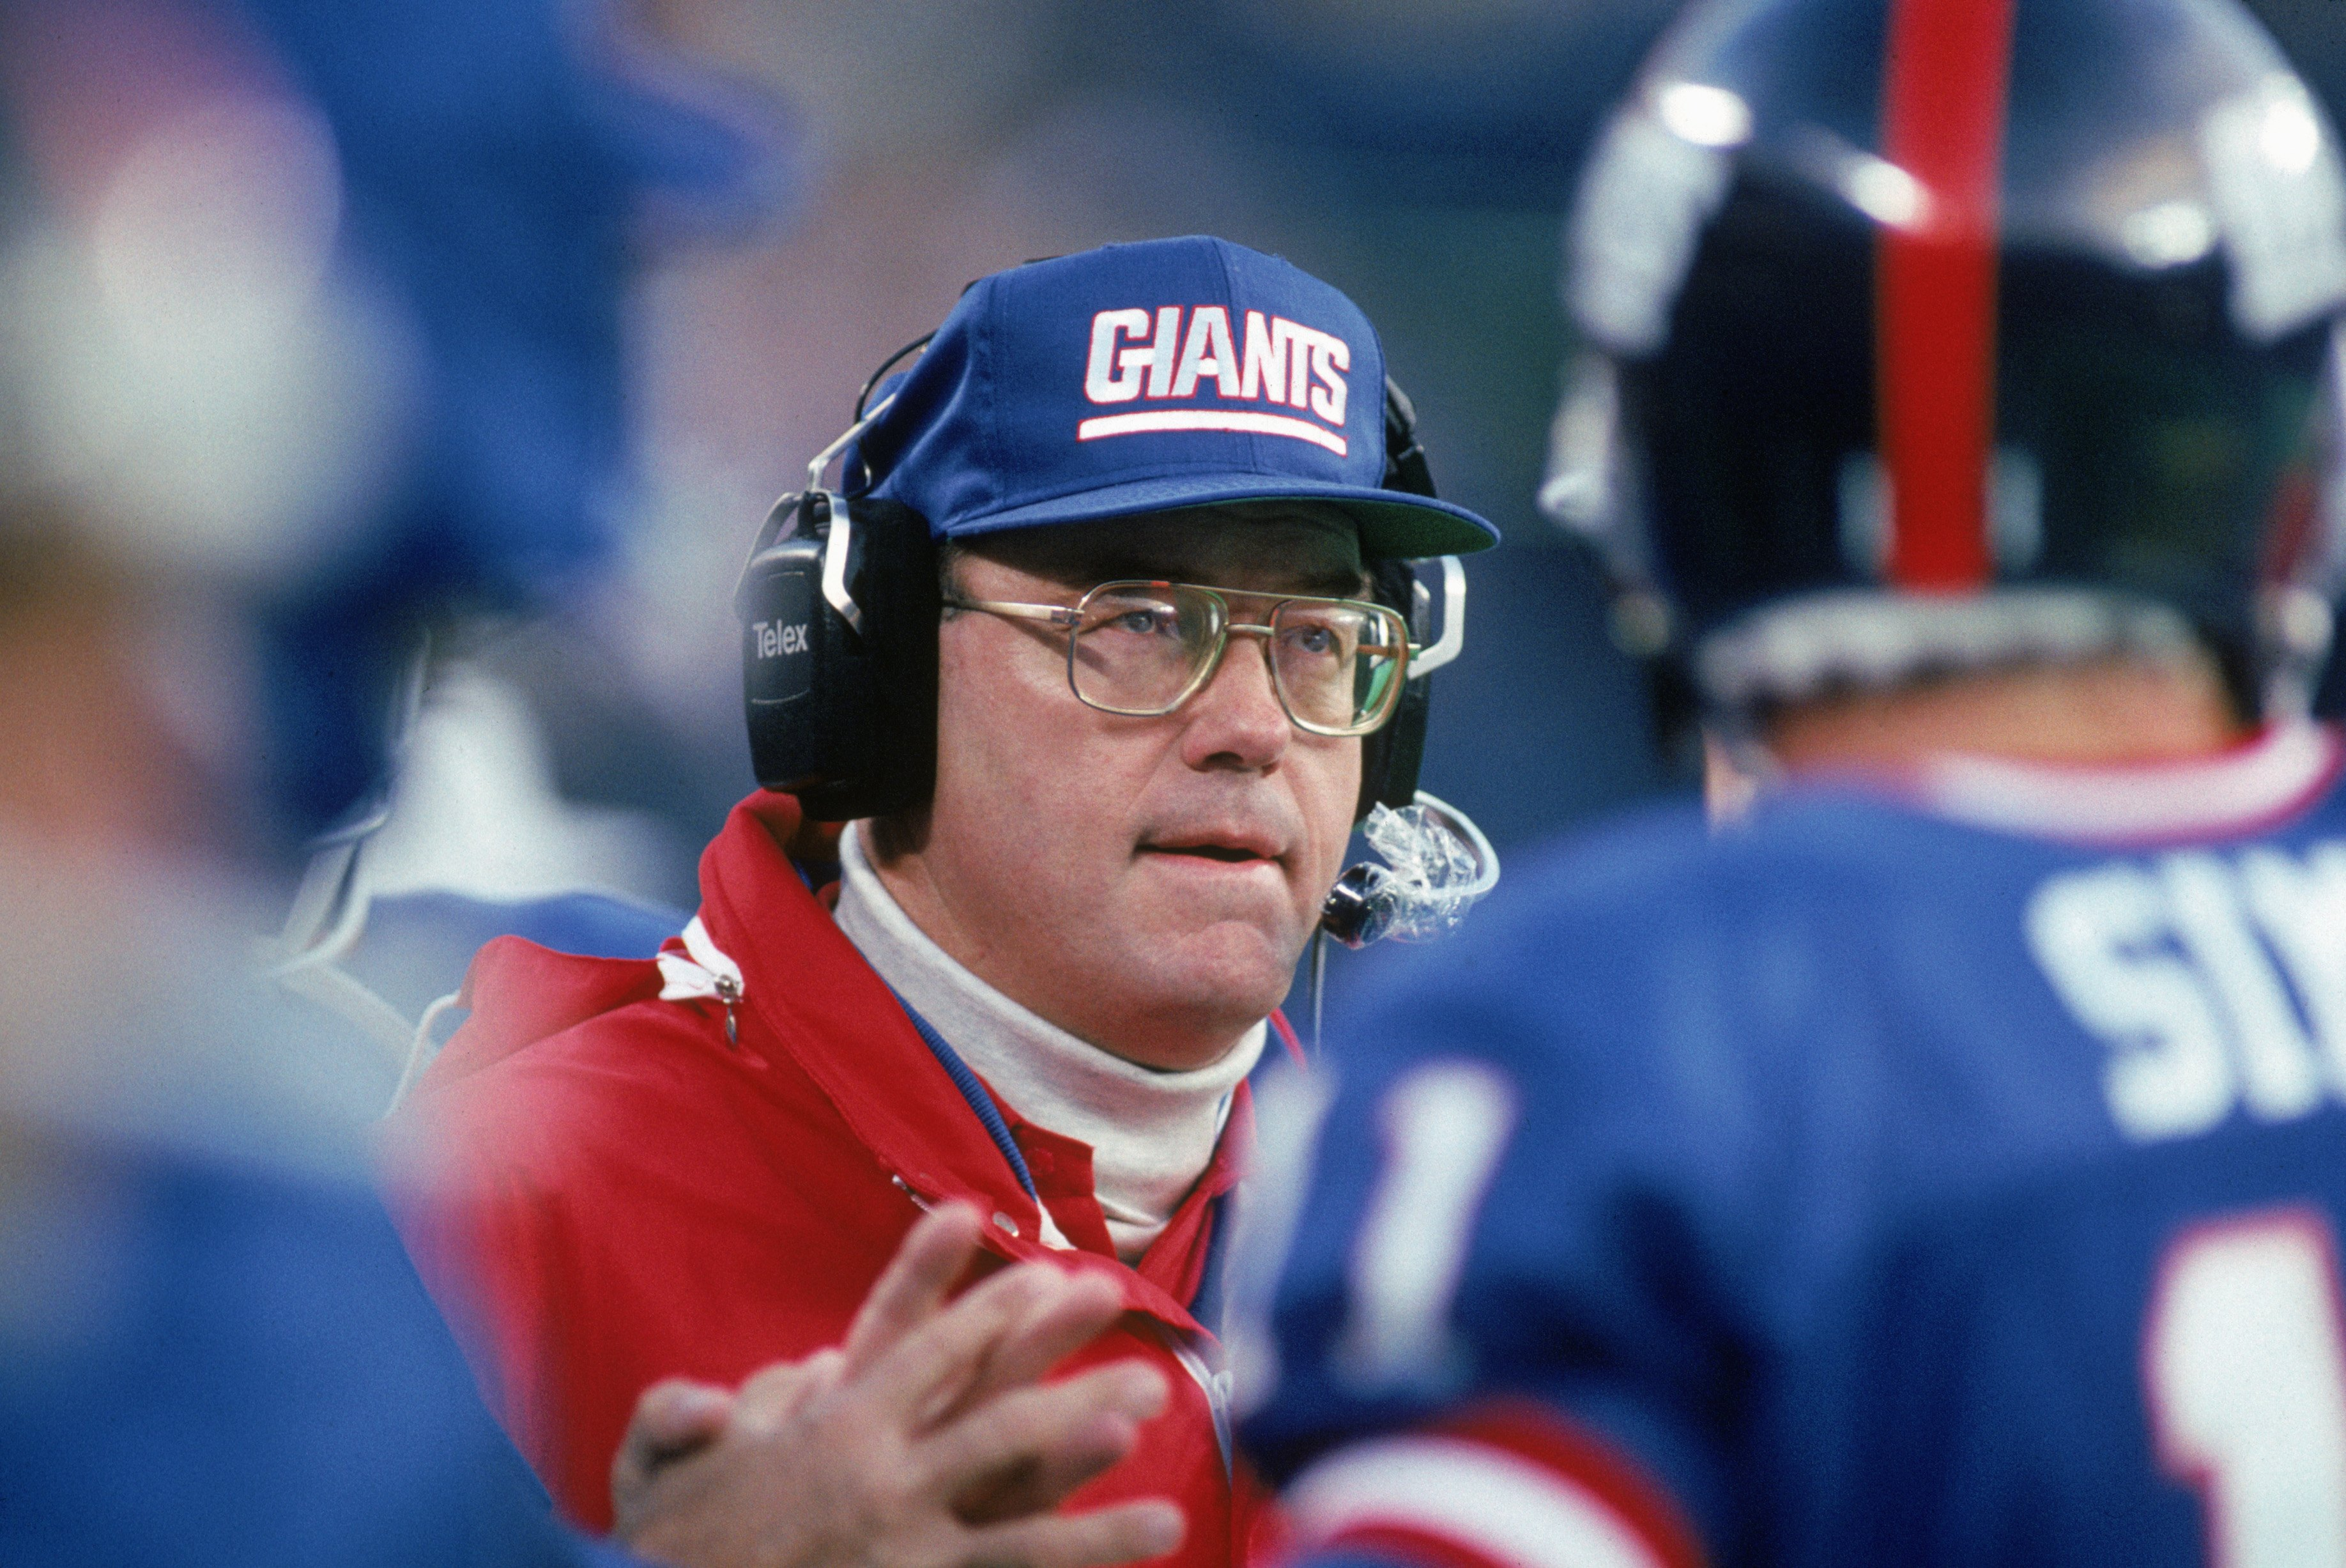 EAST RUTHERFORD, NJ - OCTOBER 28:  Running back coach Ray Handley of the New York Giants looks on during a game against the Washington Redskins at Giants Stadium October 28, 1990 in East Rutherford, New Jersey.  The Giants won 21-10.  (Photo by George Ros